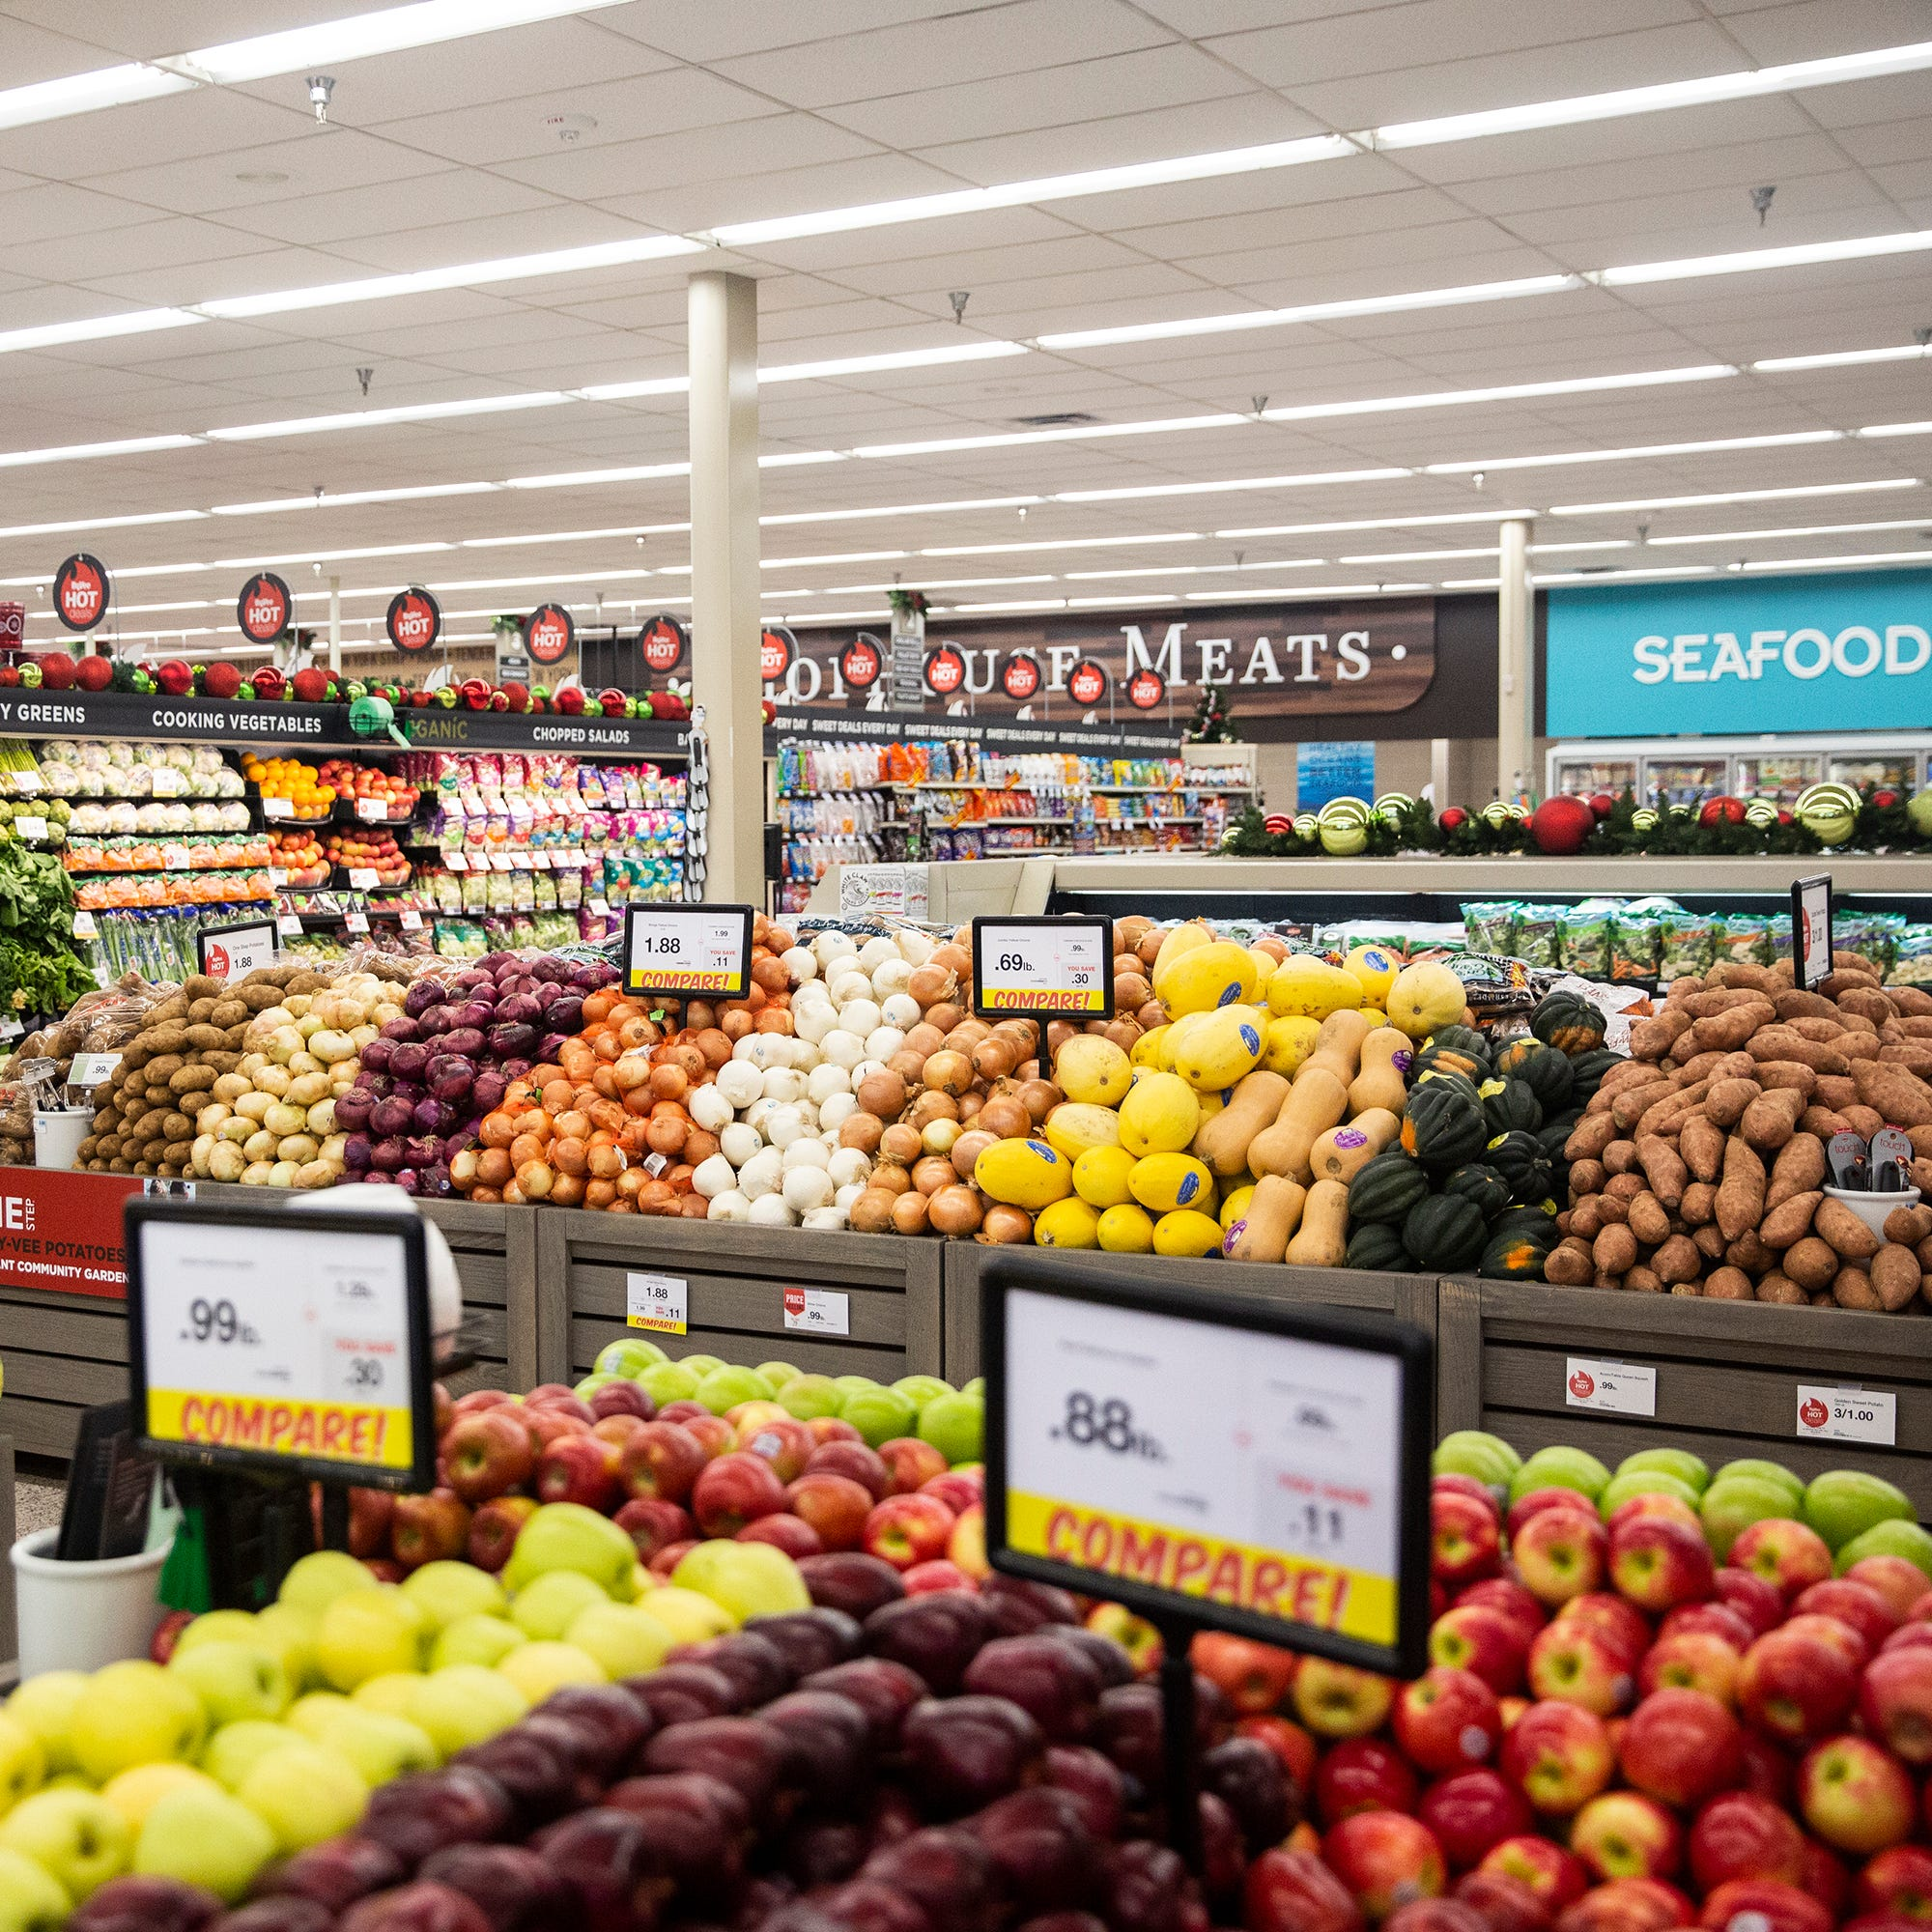 New coolers have been added to the produce and dairy sections of the remodeled Harding Hills Hy-Vee, which reopens this week after being damaged by flooding this summer, on Monday, Nov. 12, 2018, in Des Moines.